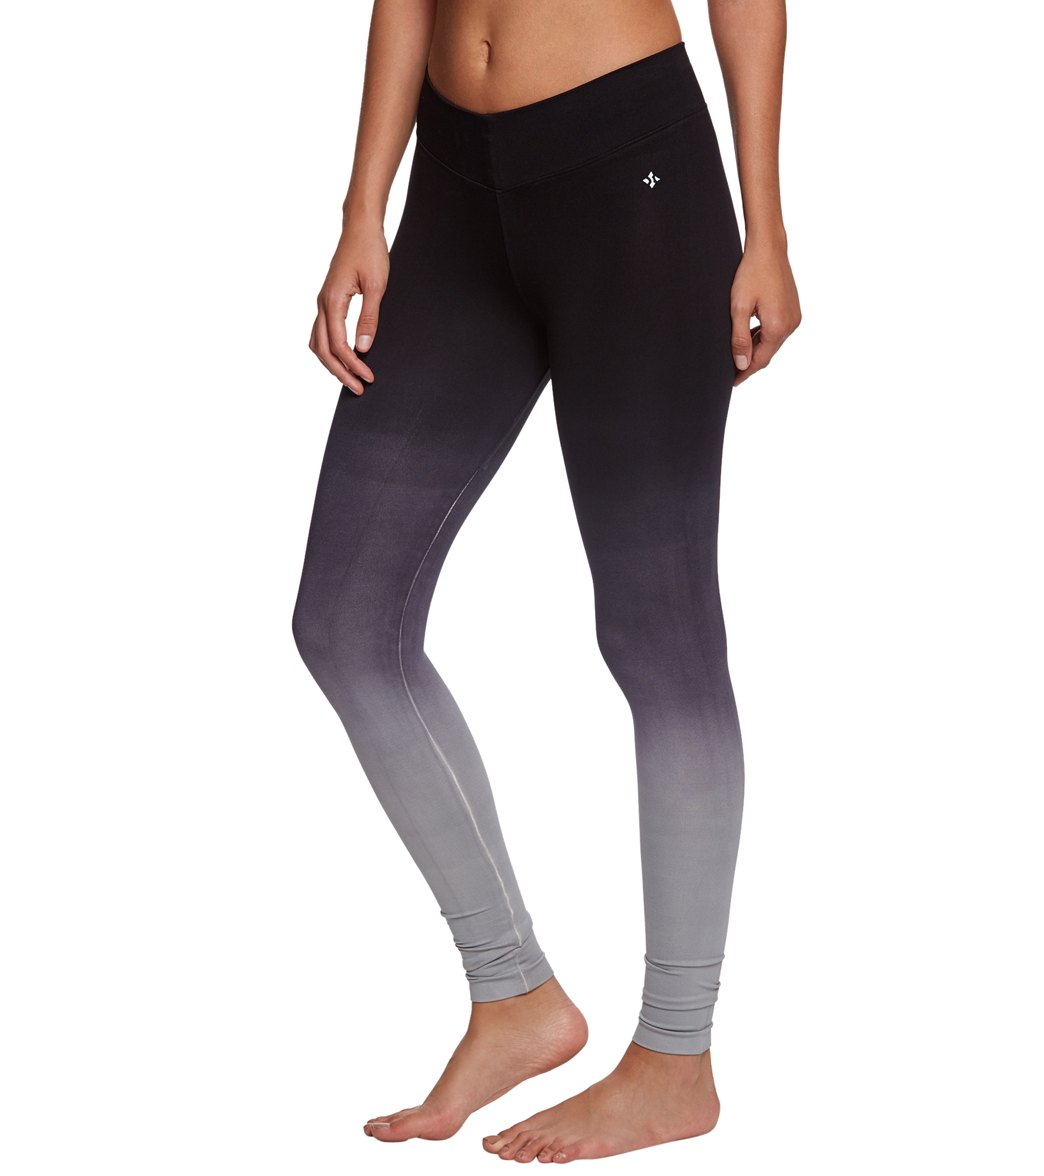 afc78cfcaed4 NUX Ombre V-Ankle Seamless Yoga Leggings at YogaOutlet.com - Free Shipping